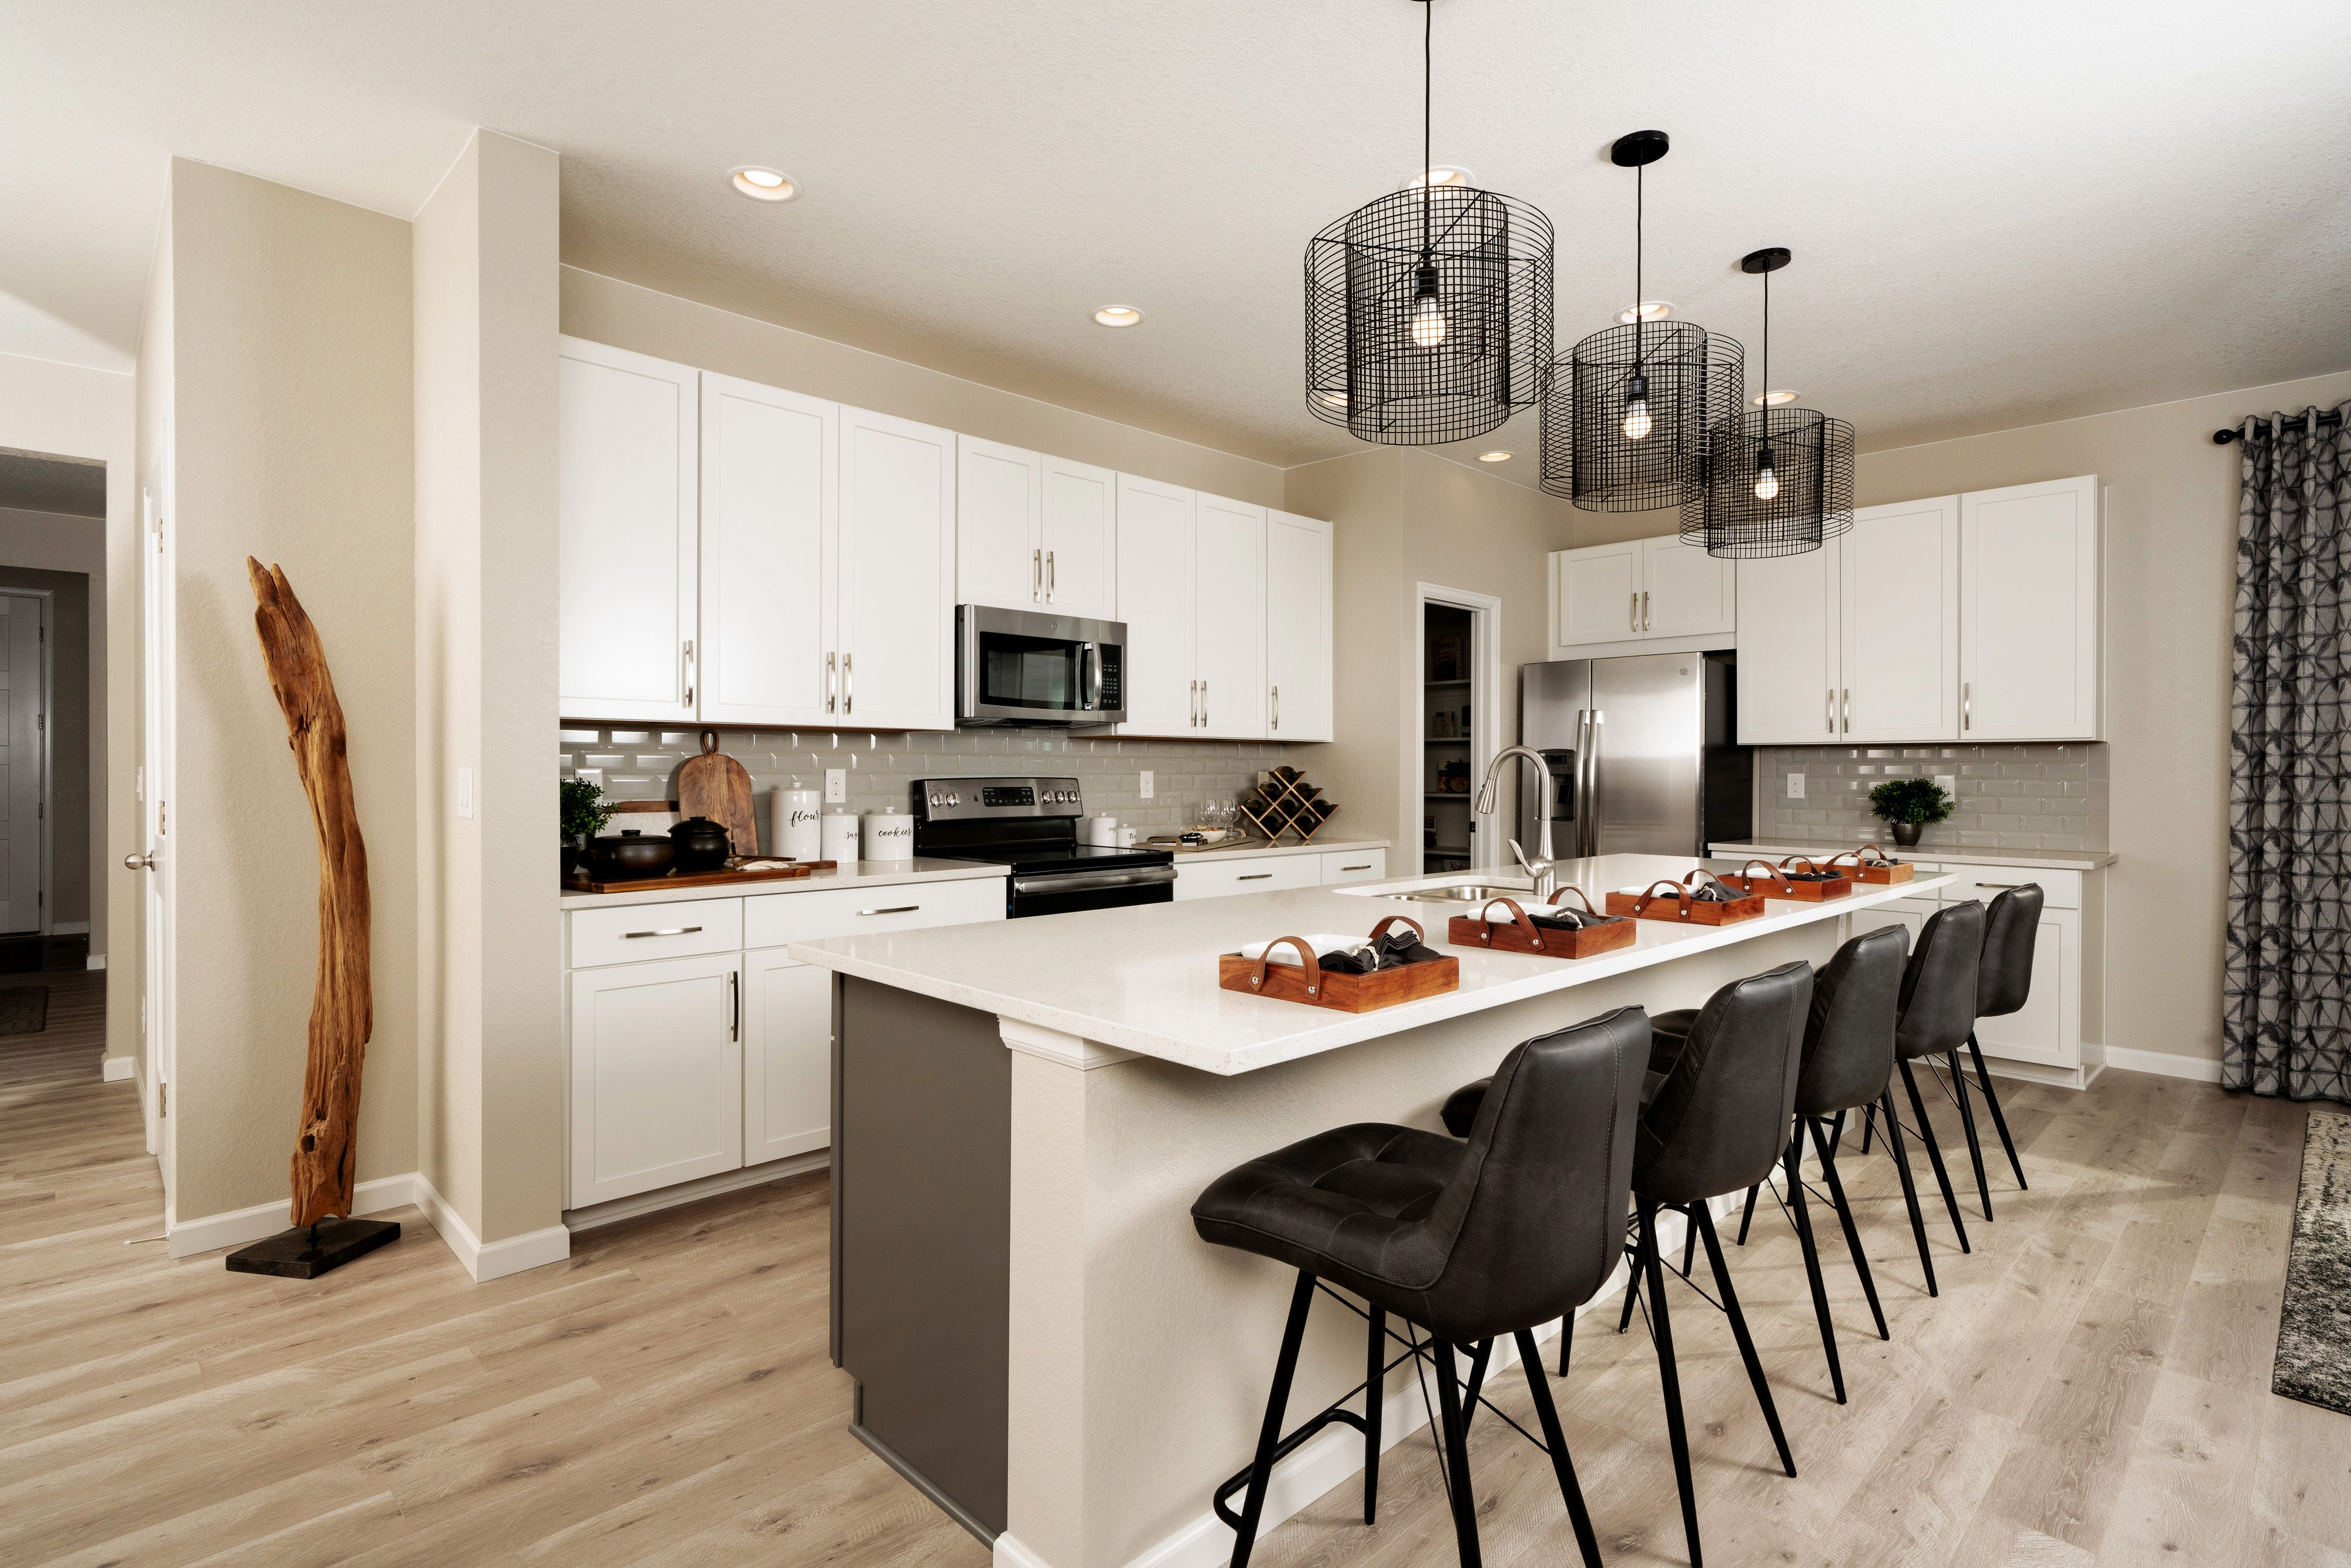 Kitchen featured in the Centennial By Taylor Morrison in Denver, CO